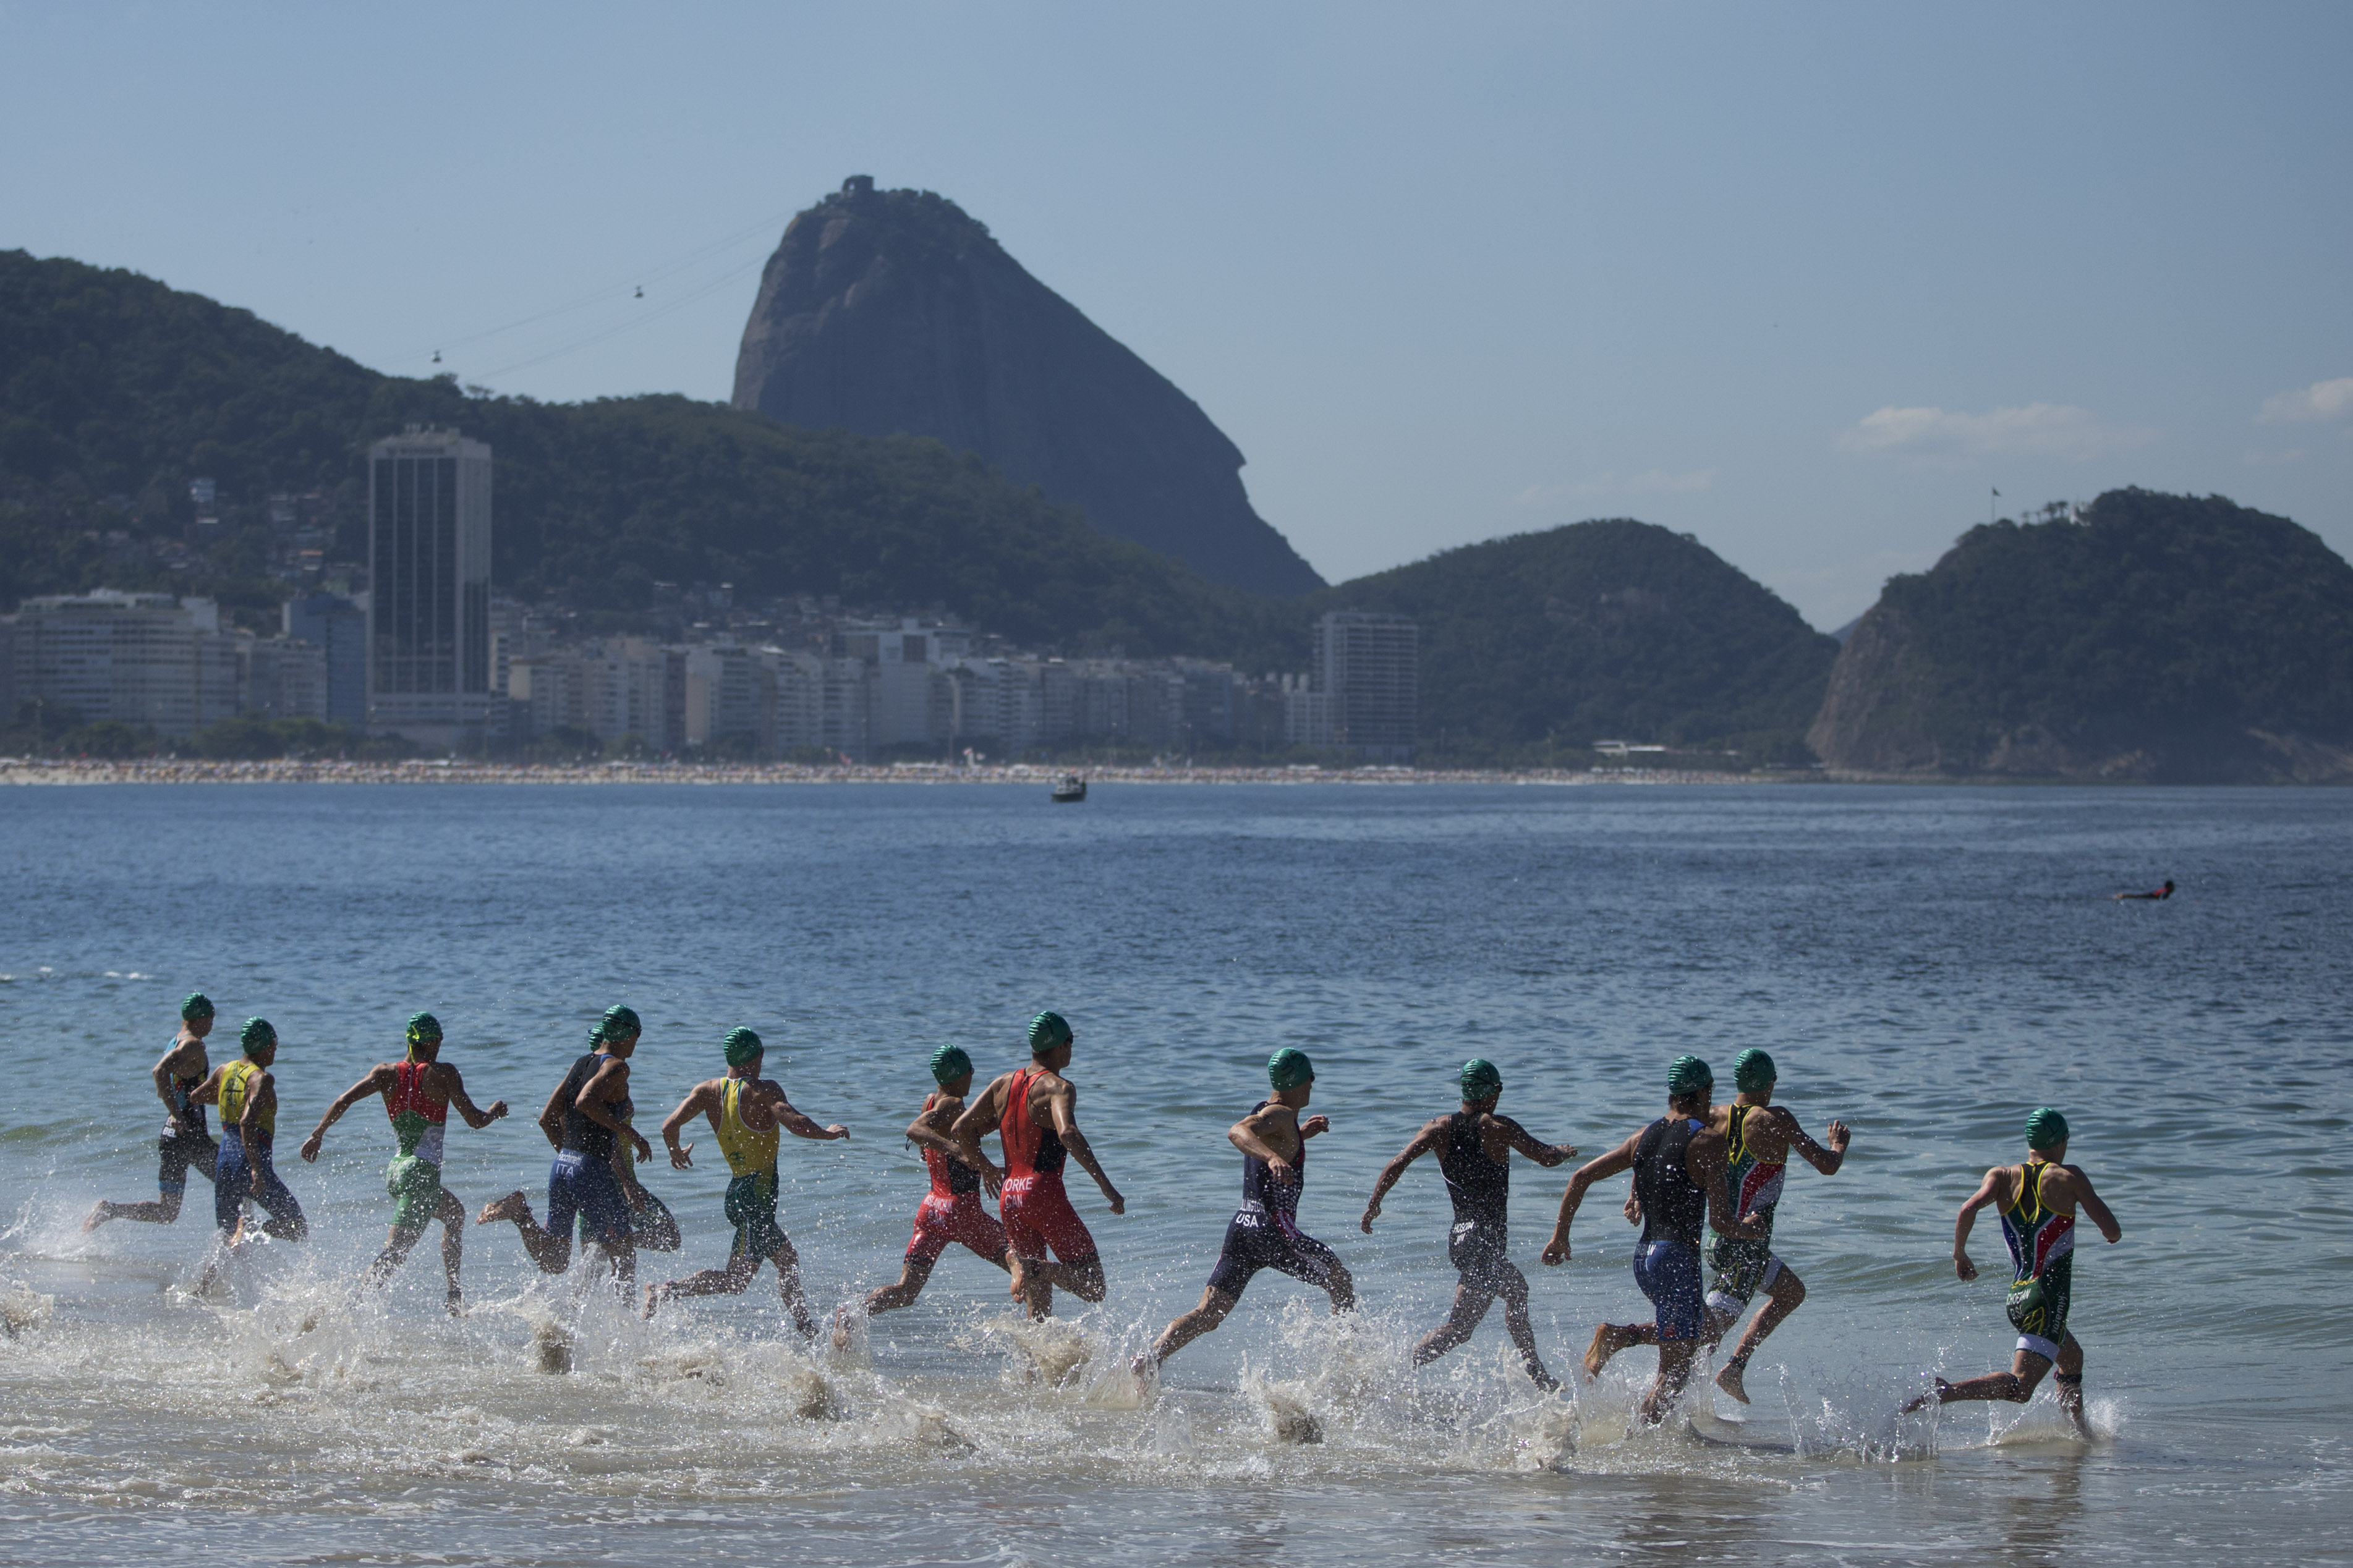 FILE - In this Aug. 2, 2015, file photo, triathletes enter the water at the start of the men's triathlon ITU World Olympic Qualification Event in Rio de Janeiro, Brazil. Hundreds of thousands of foreign visitors are expected for the Olympics, which open A